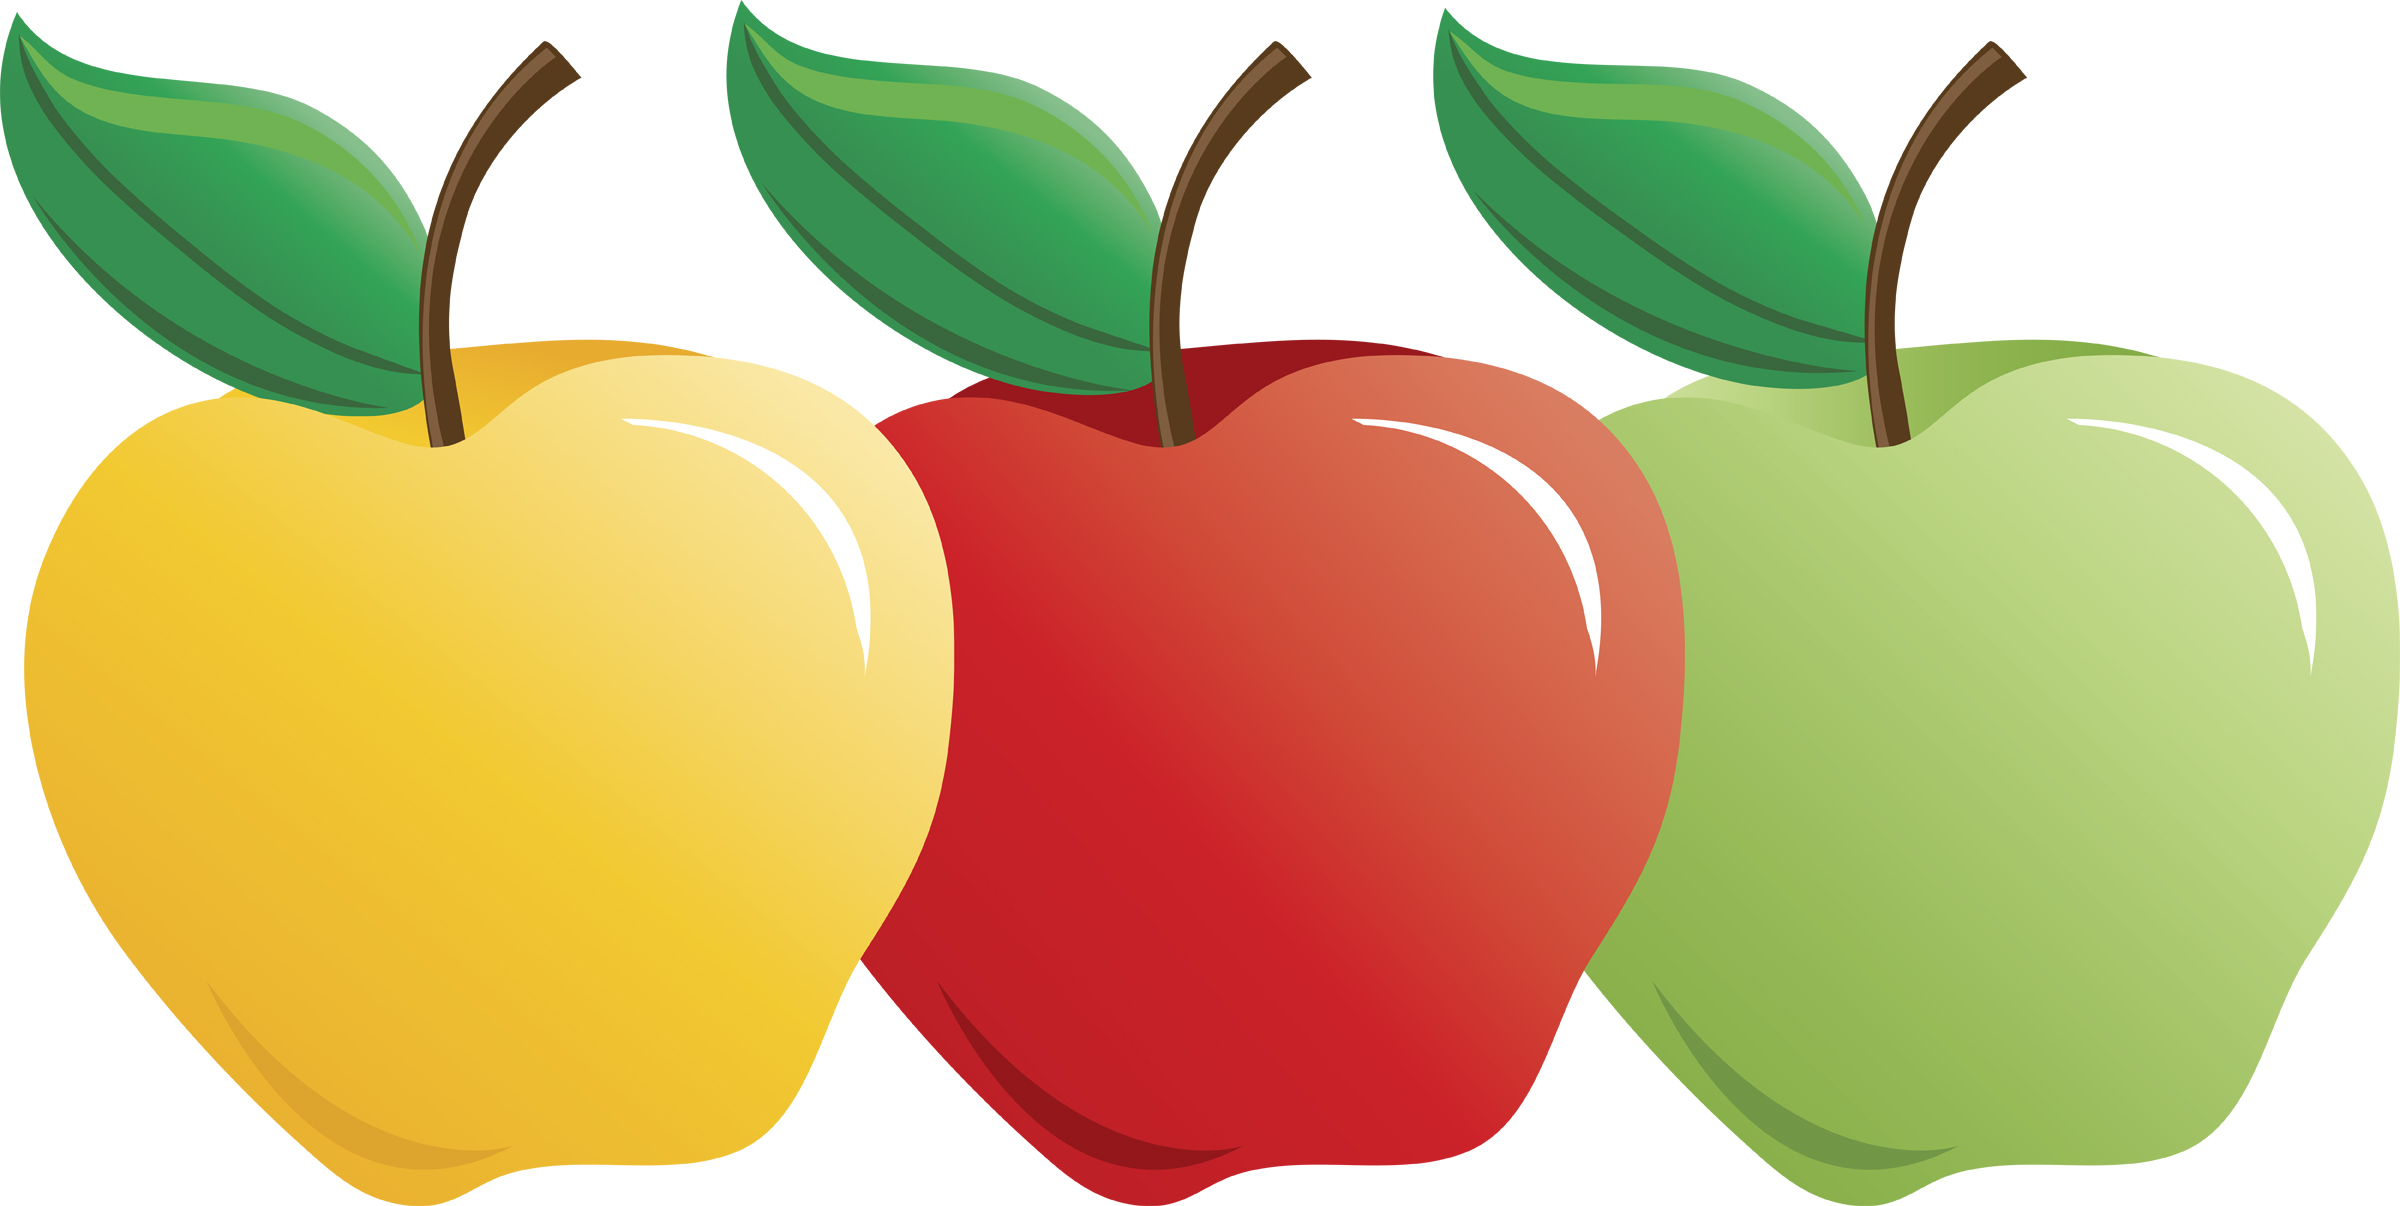 One apple clipart - ClipartFest png download